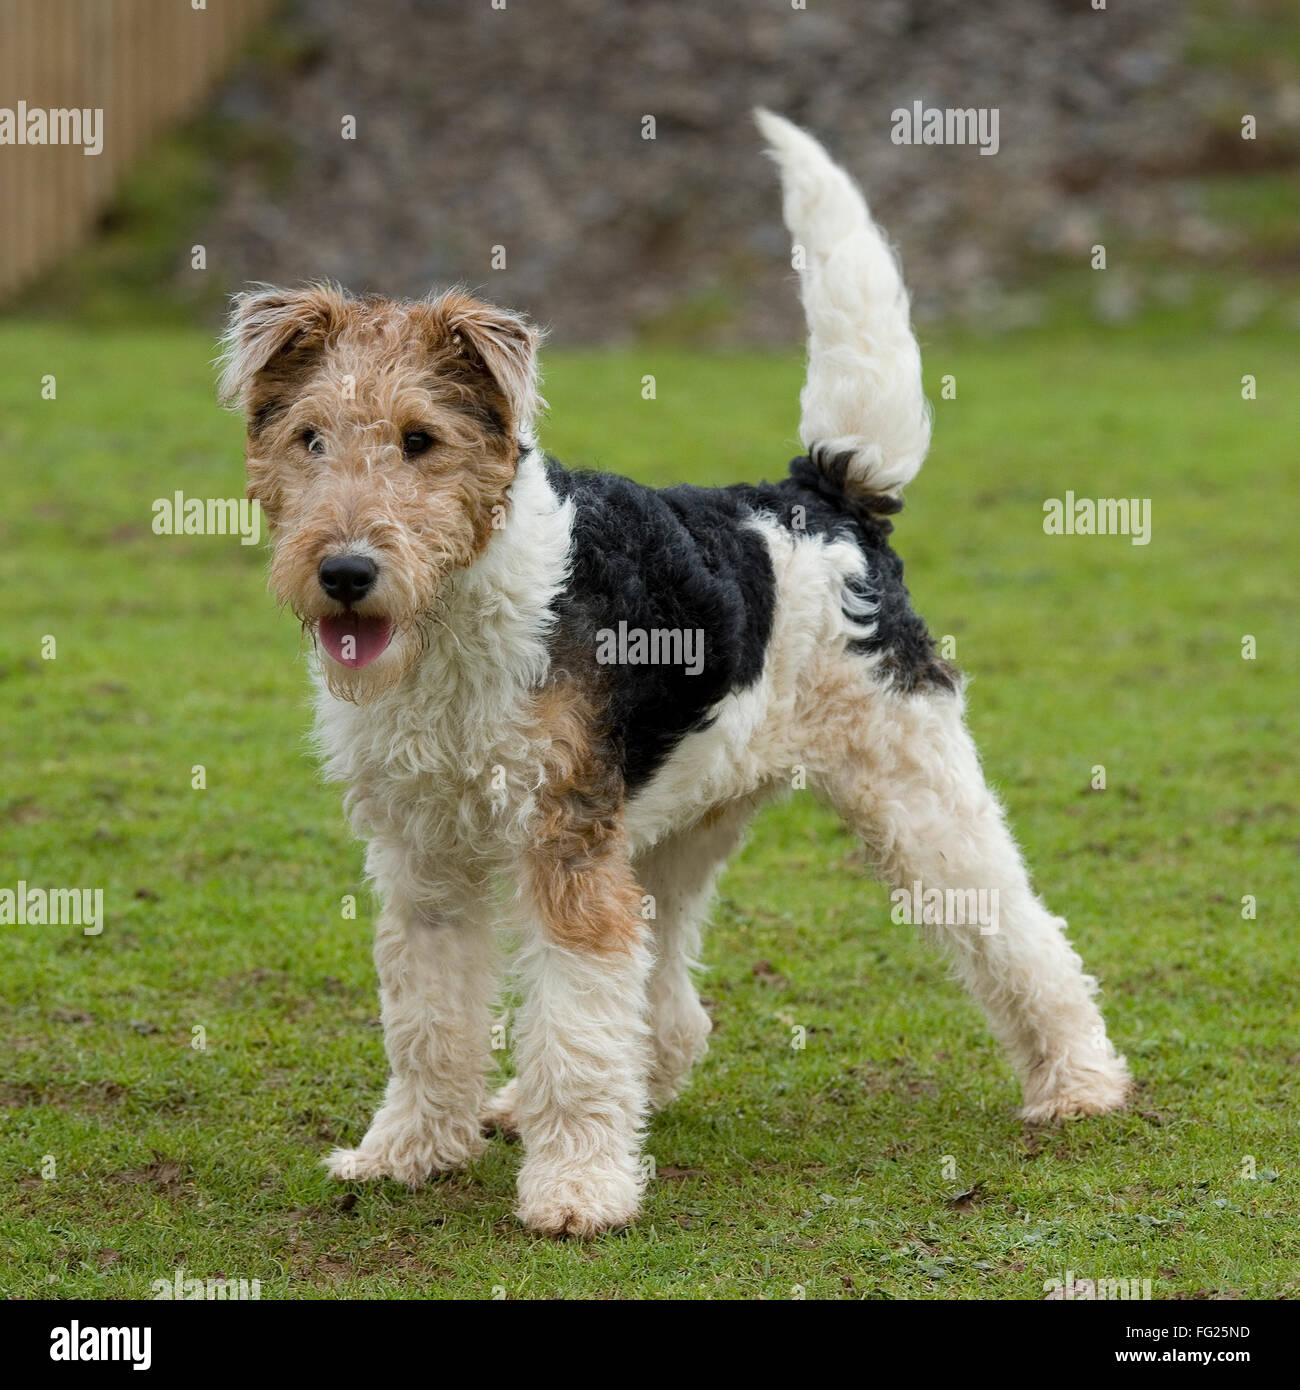 Wirehaired Fox Terrier Photos Wire Center Board Makeriso Pcb Makerprinted Circuit Product On Related Images